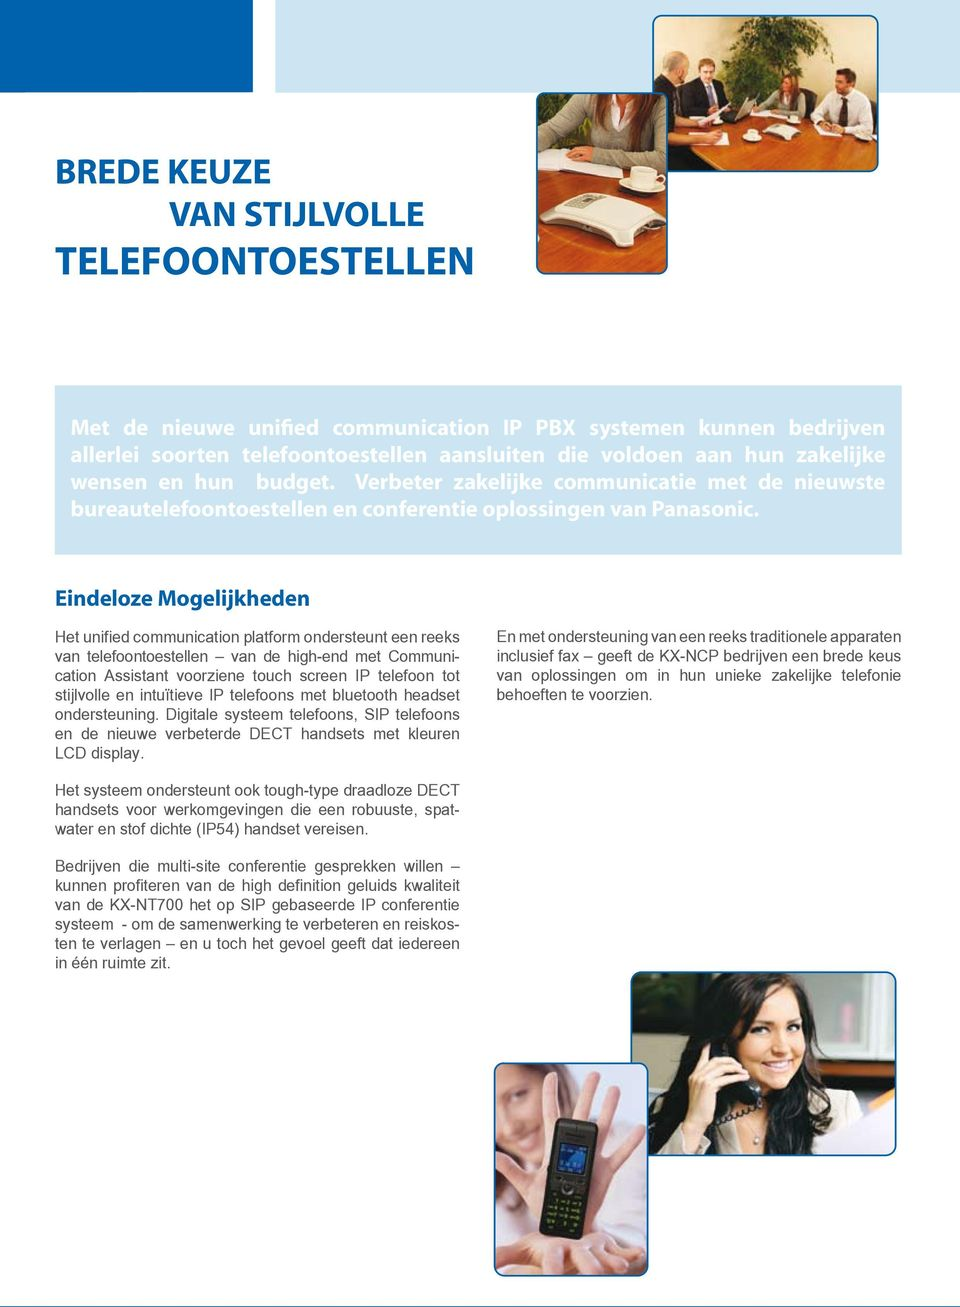 Eindeloze Mogelijkheden Het unified communication platform ondersteunt een reeks van telefoontoestellen van de high-end met Communication Assistant voorziene touch screen IP telefoon tot stijlvolle